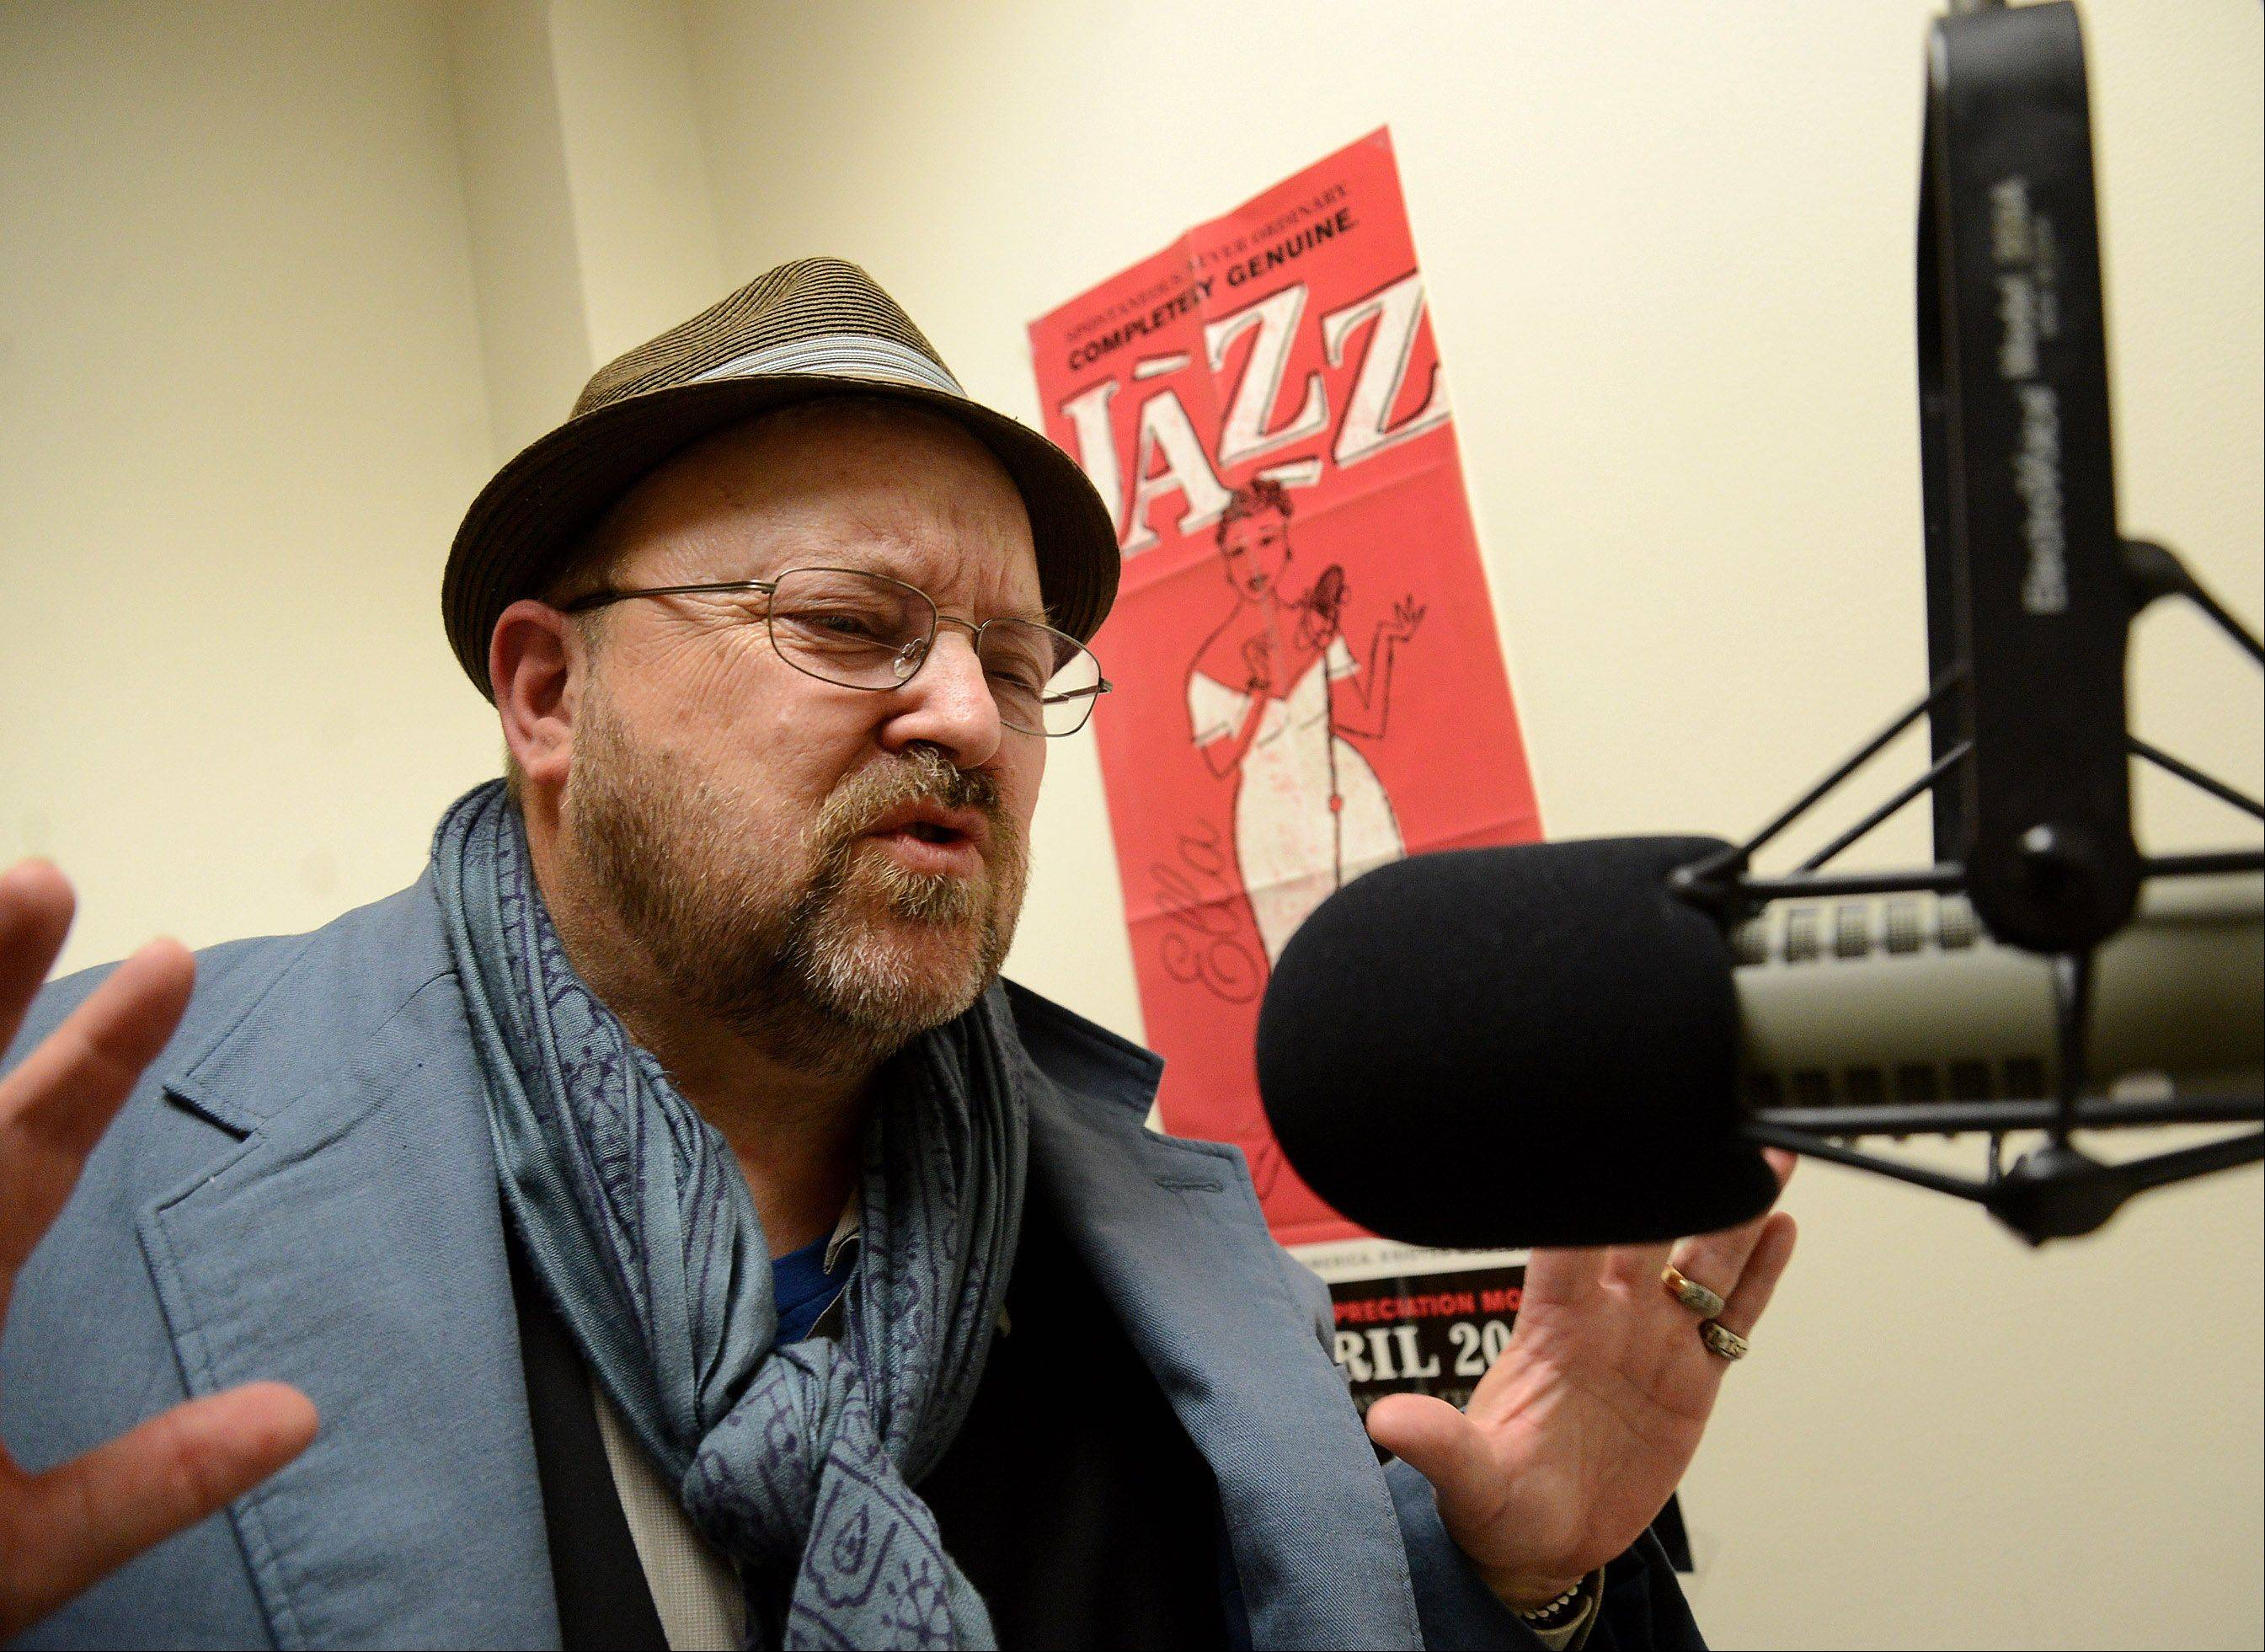 Alan Leinonen, aka Mister Al, performs his Mister Al's Lounge radio program on Harper College's WHCM, 88.3 FM radio station.